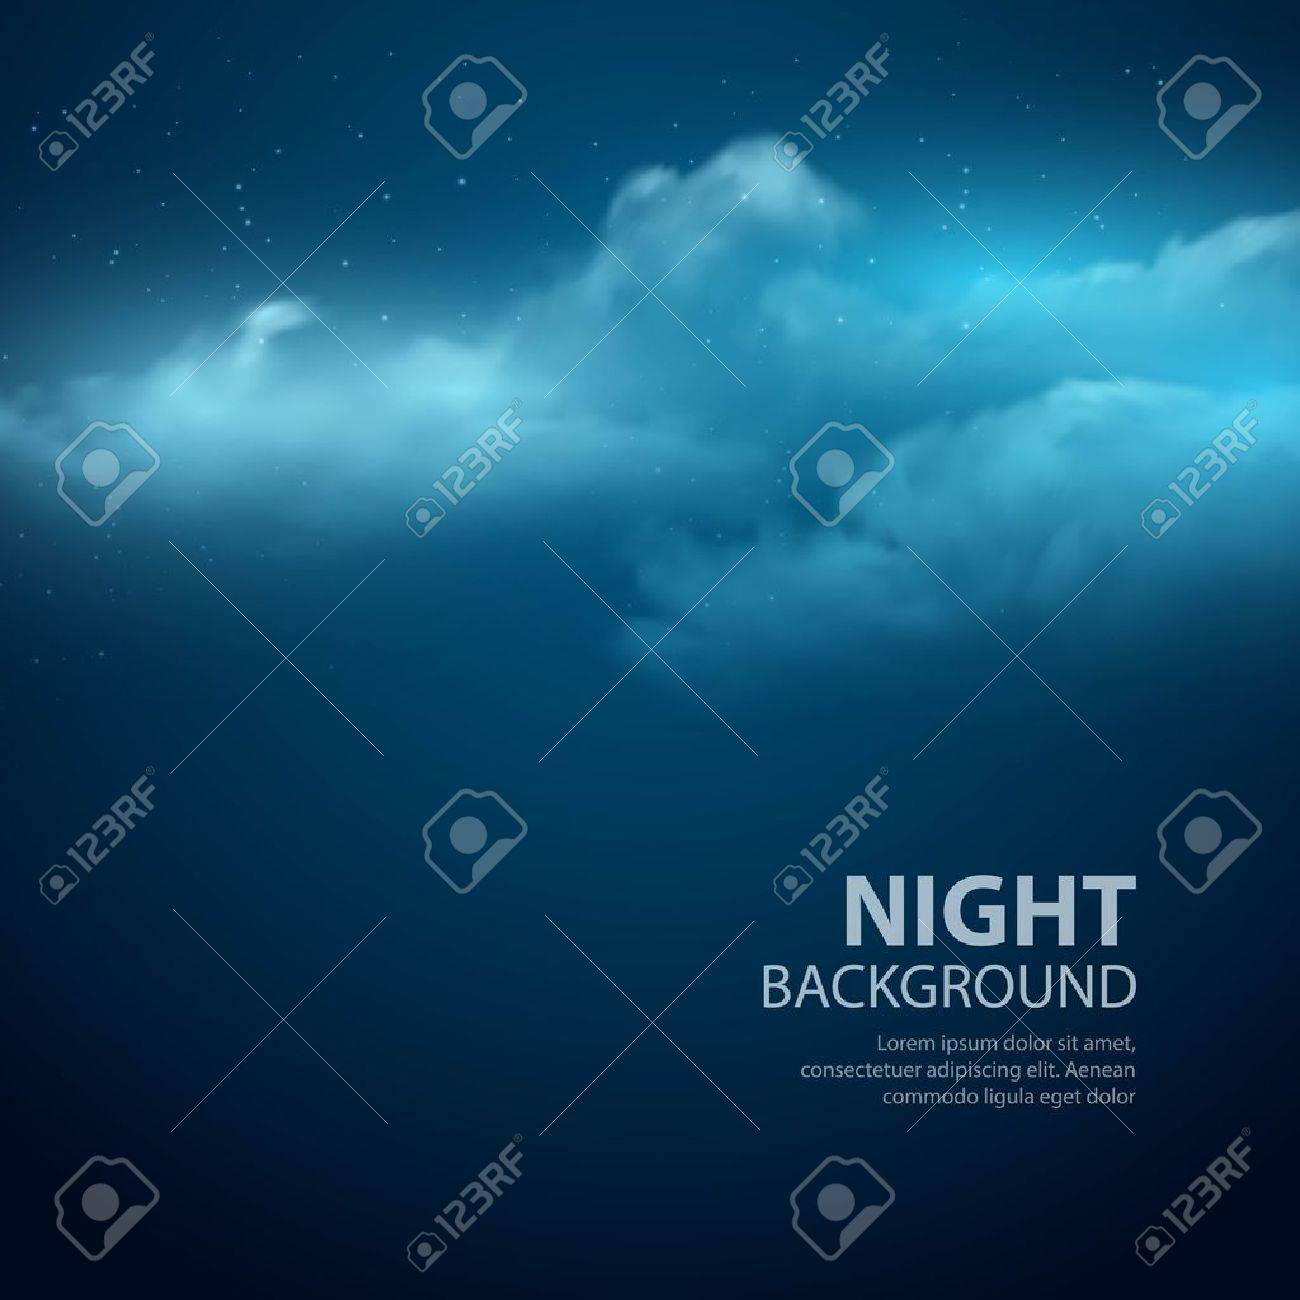 Night sky abstract background. Vector illustration - 41726256